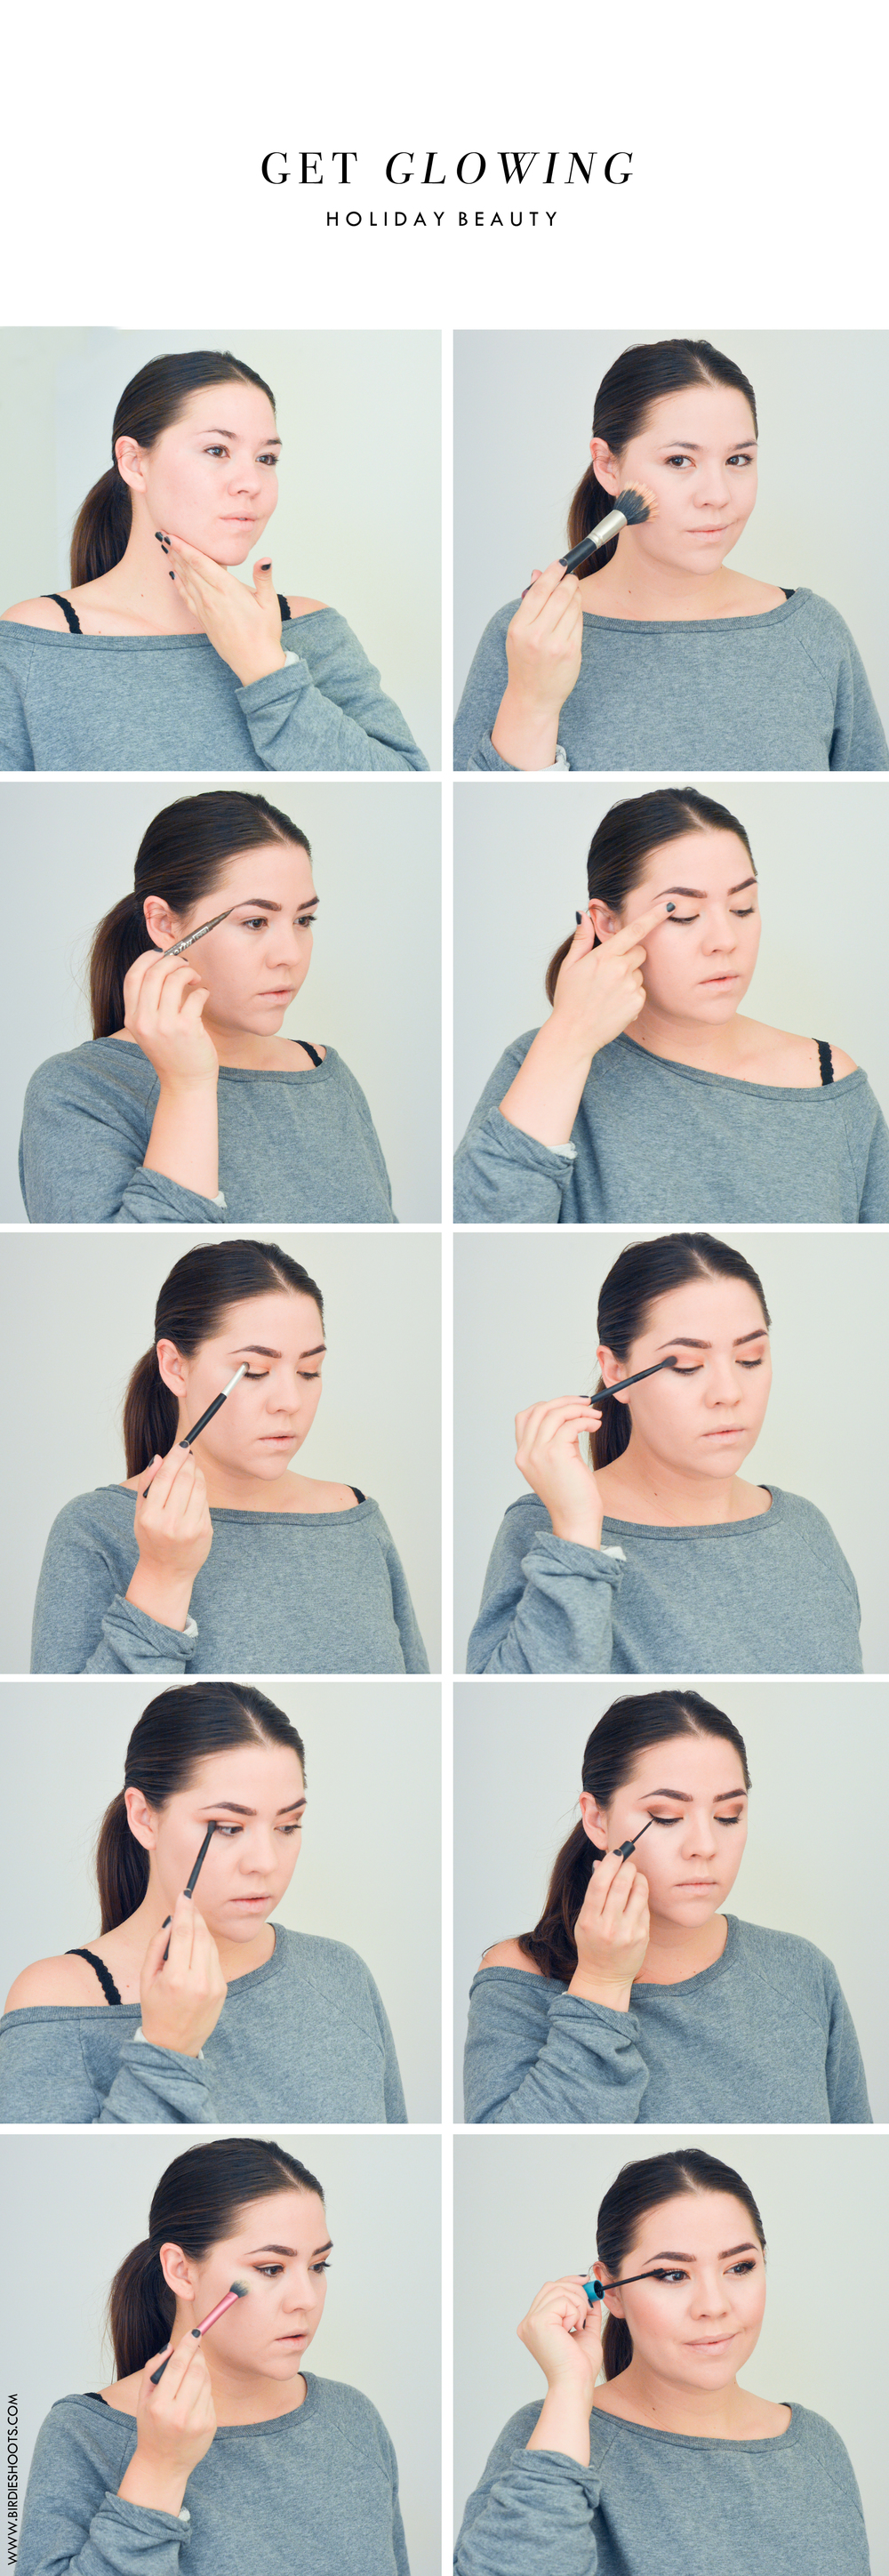 Holiday Beauty Tutorial via. Birdie Shoots